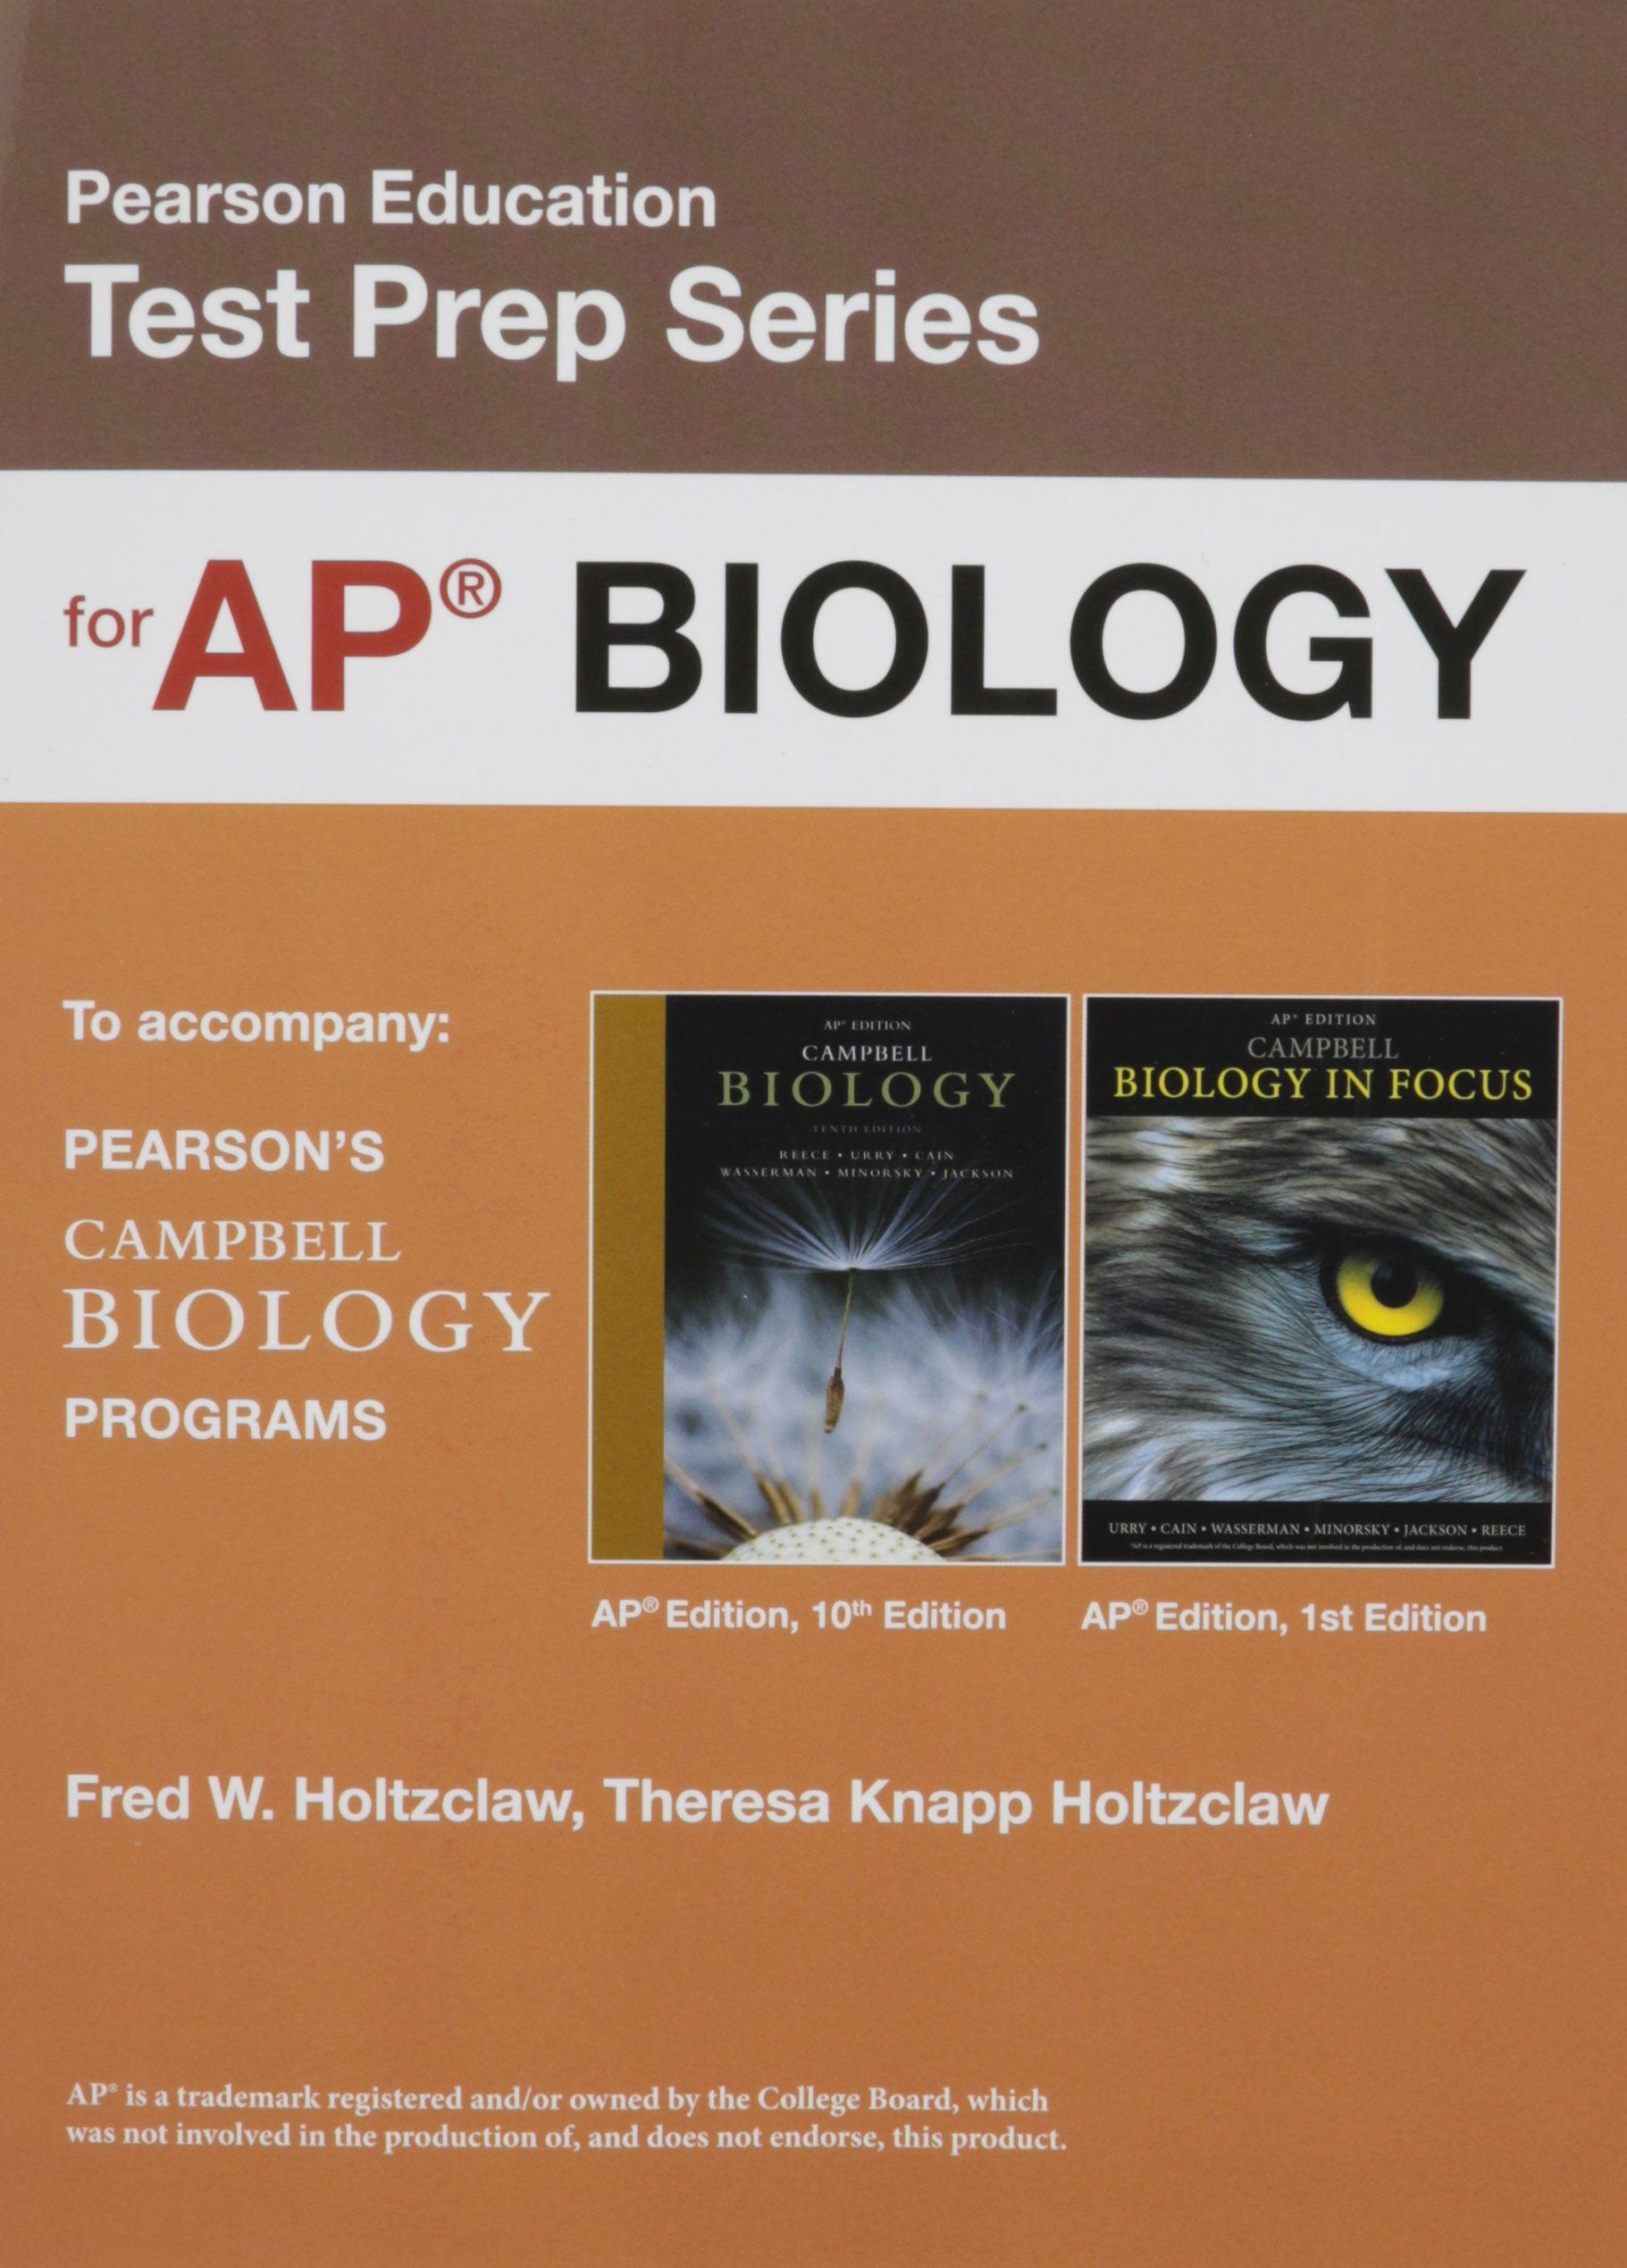 Buy AP Biology (Pearson Education Test Prep) Book Online at Low Prices in  India | AP Biology (Pearson Education Test Prep) Reviews & Ratings -  Amazon.in